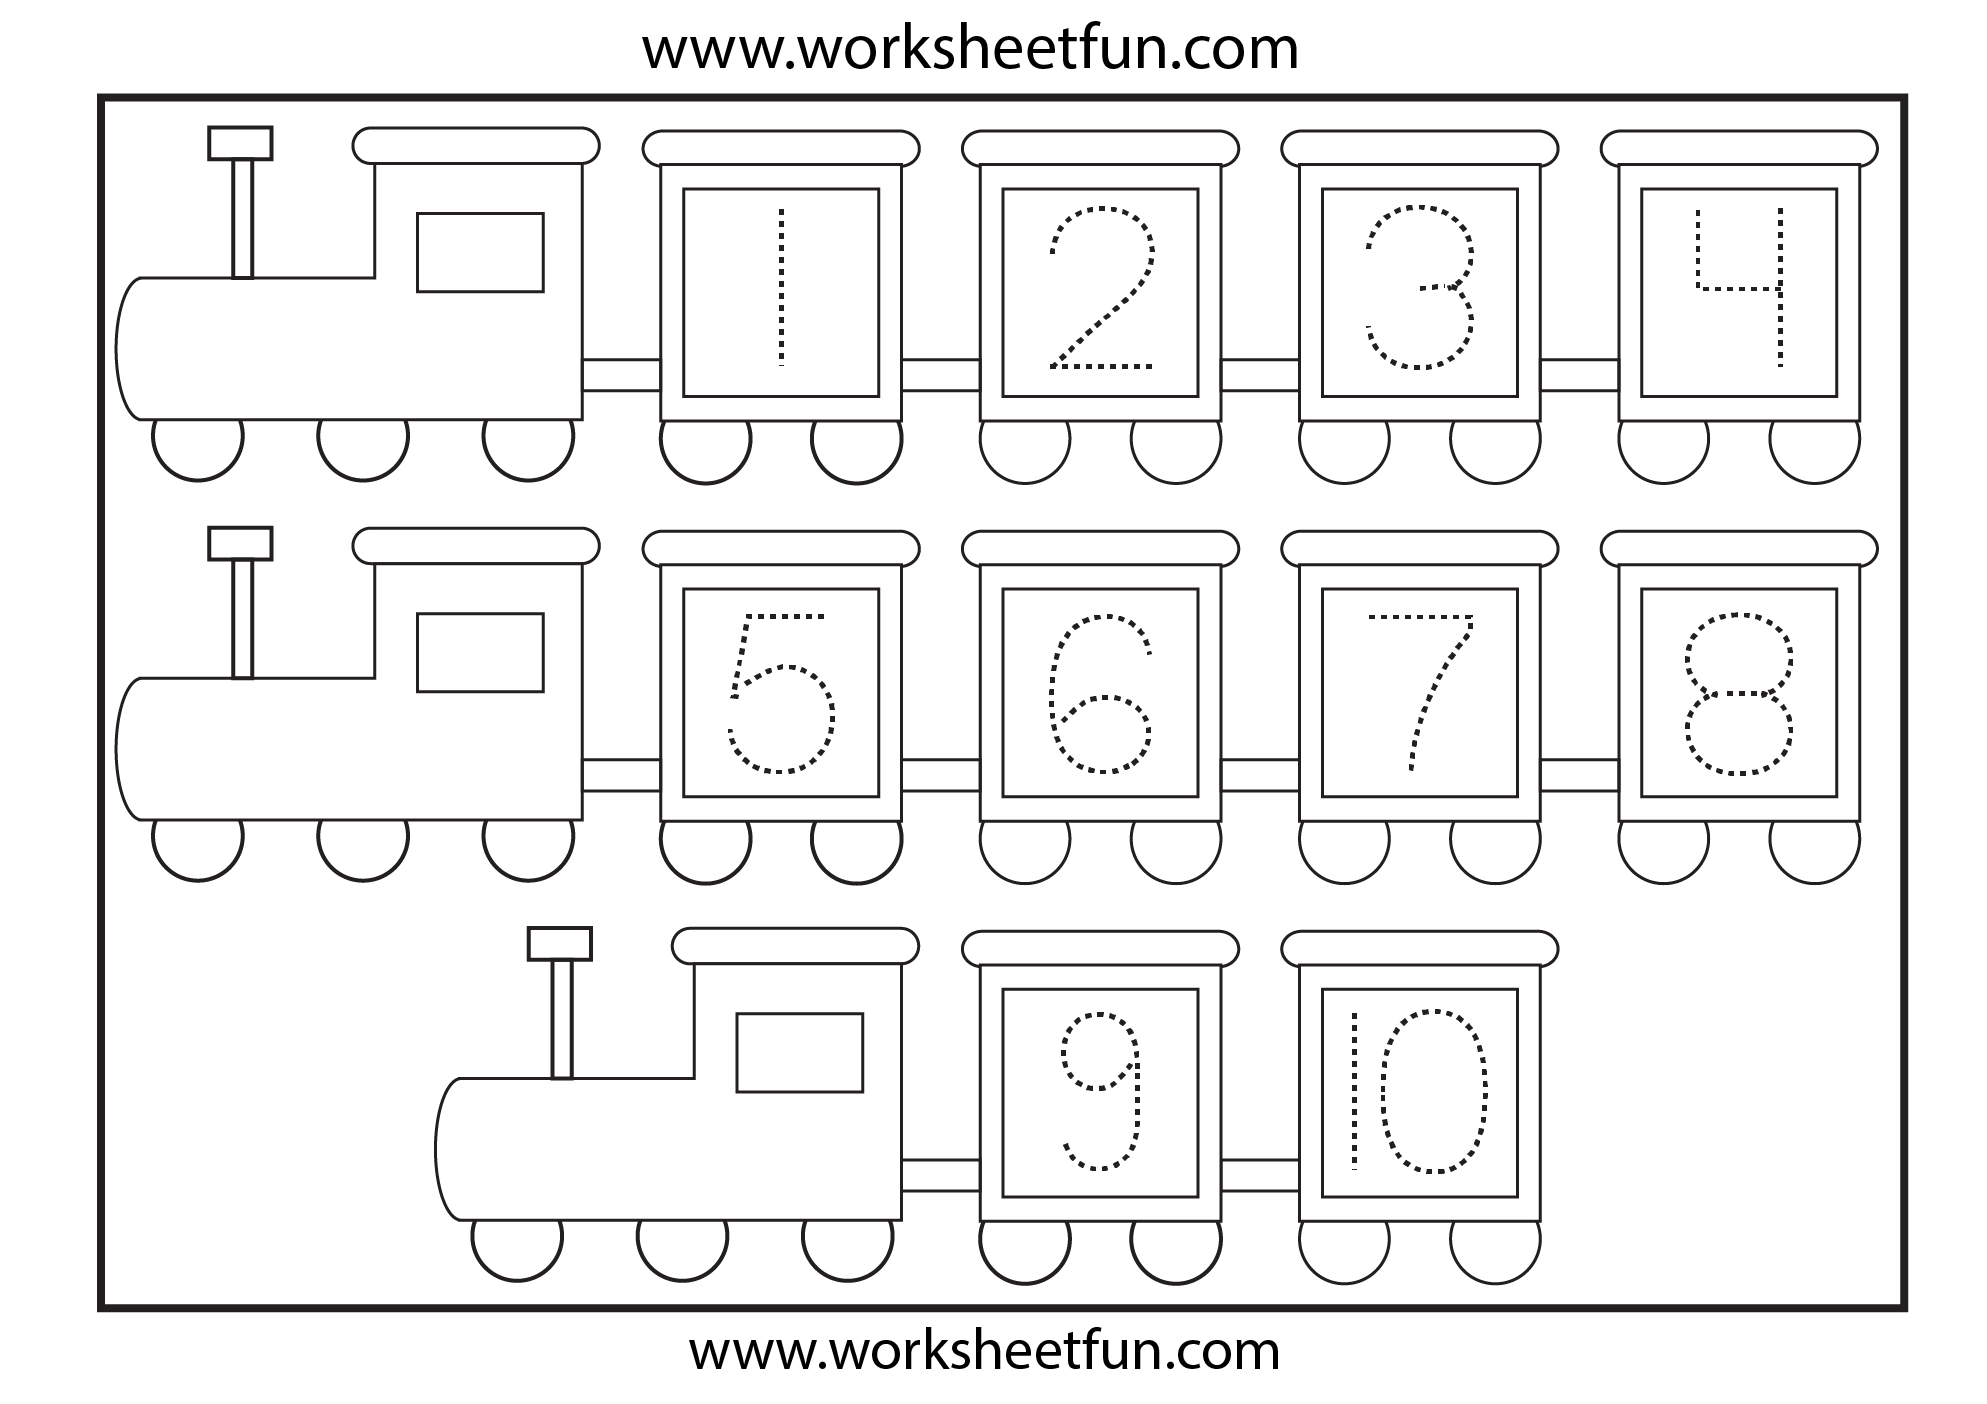 Printables Number Tracing Worksheets 1-10 1000 images about number worksheets on pinterest to work student and year 2